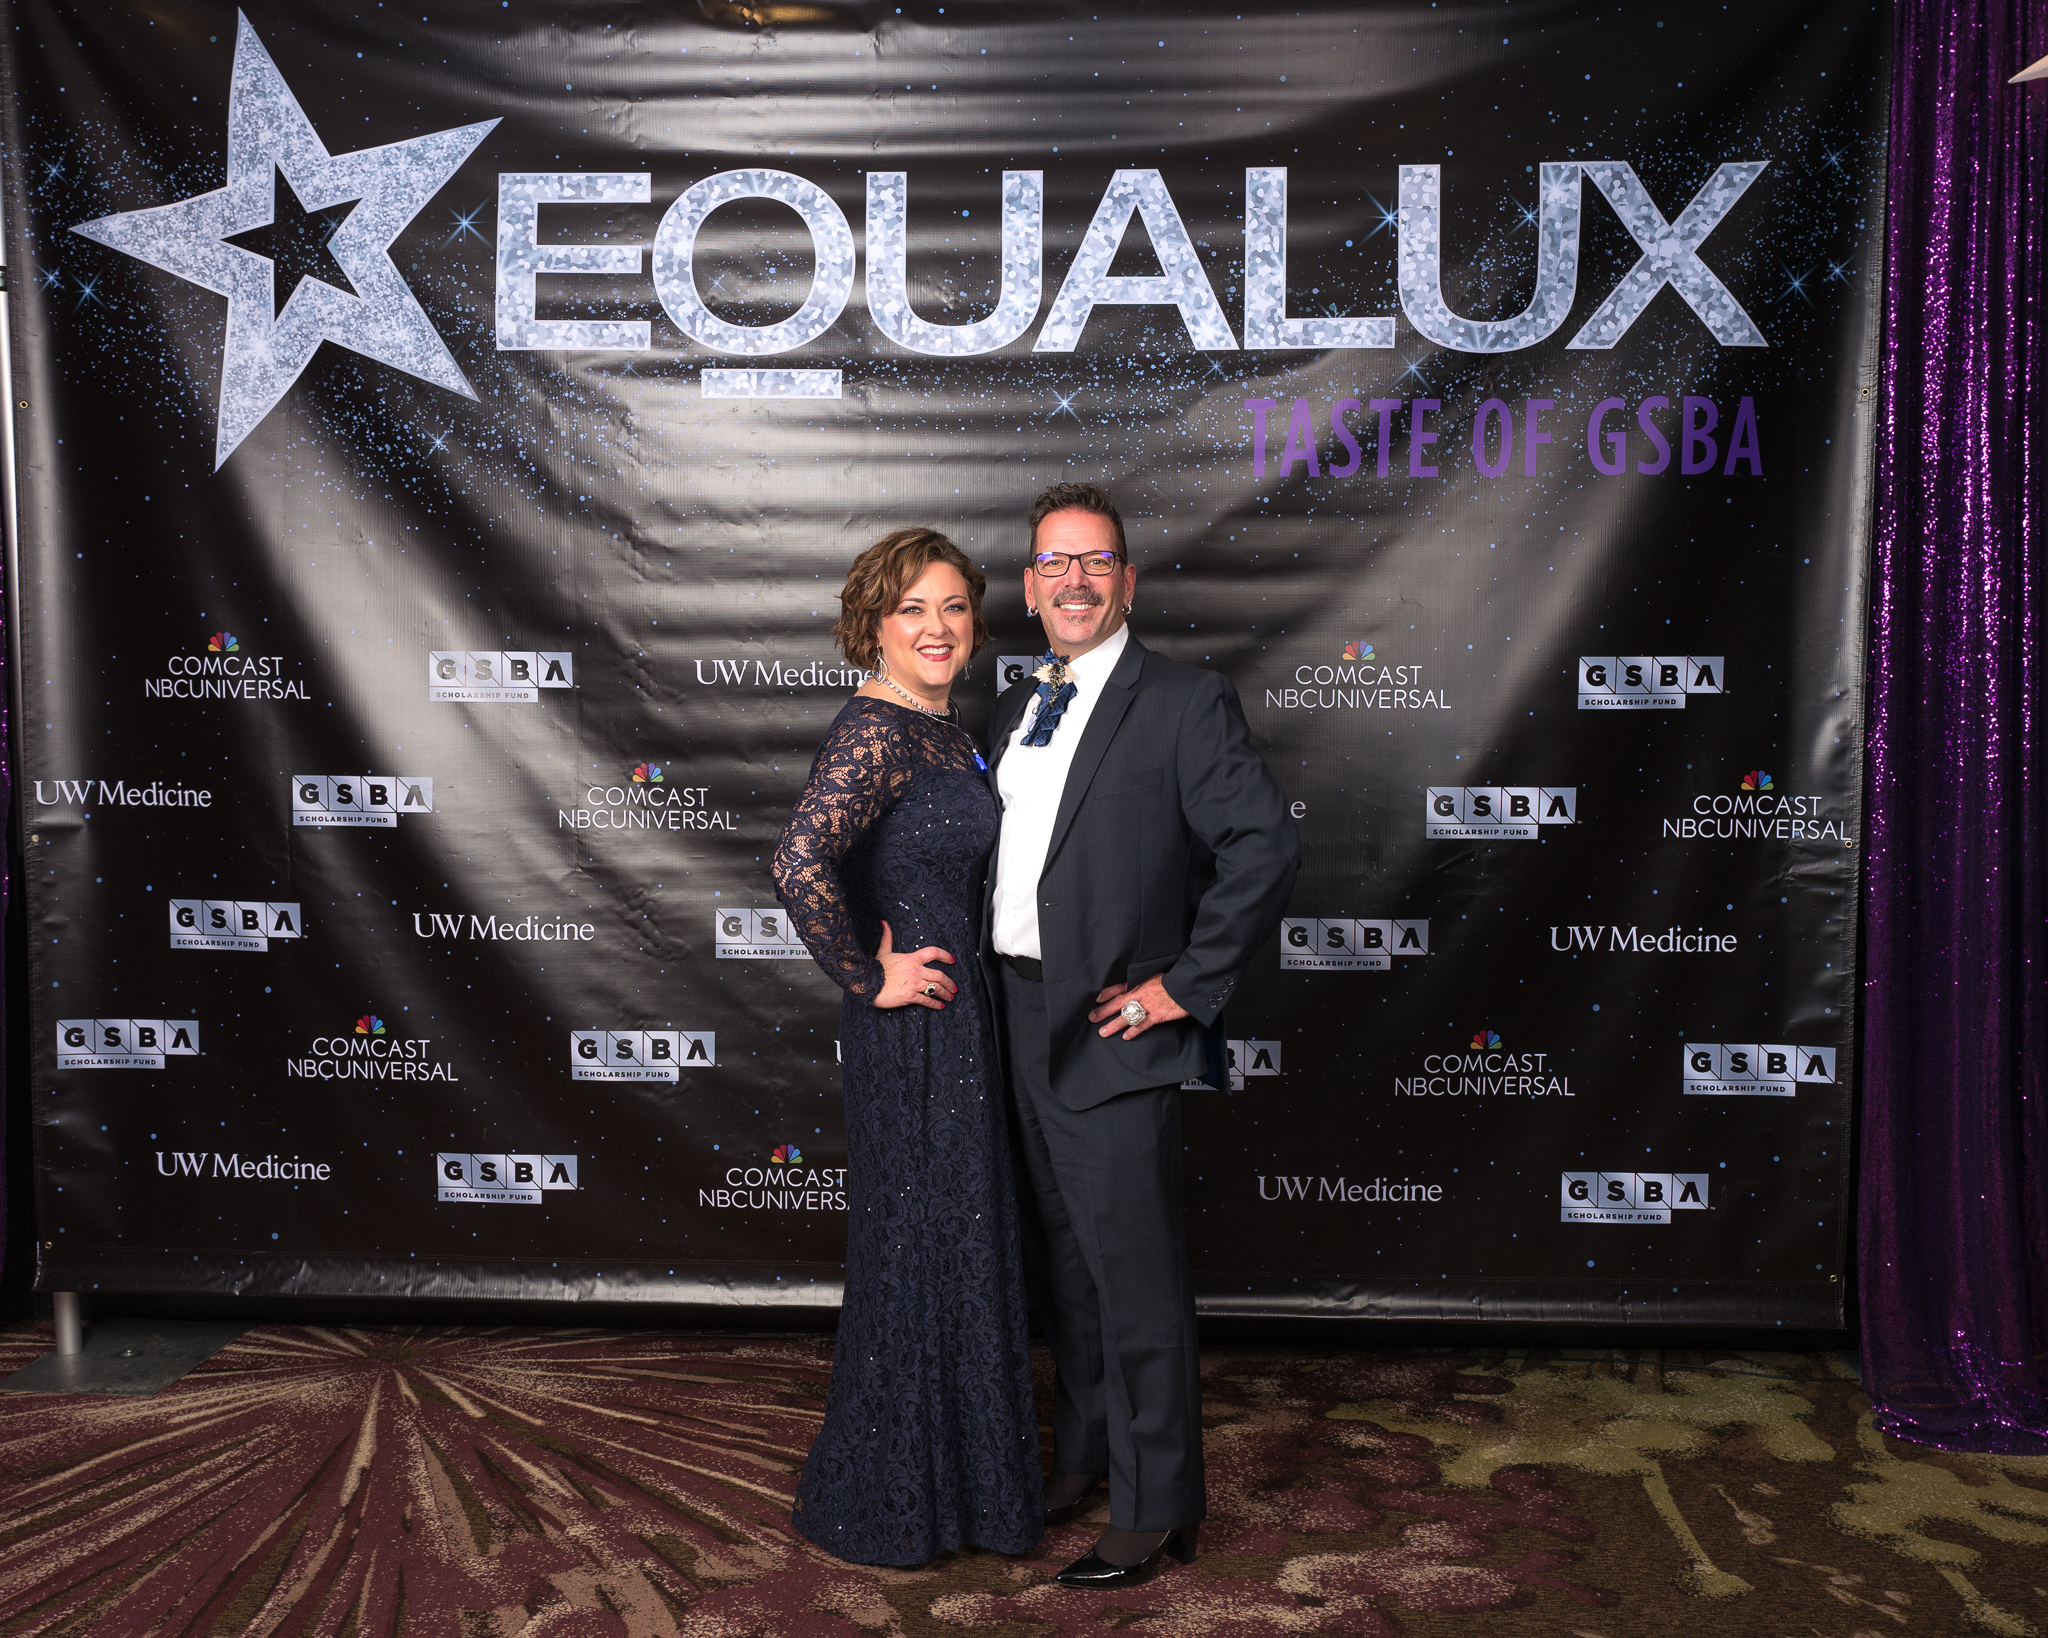 111718_GSBA EQUALUX at The Westin Seattle (Credit- Nate Gowdy)-101.jpg